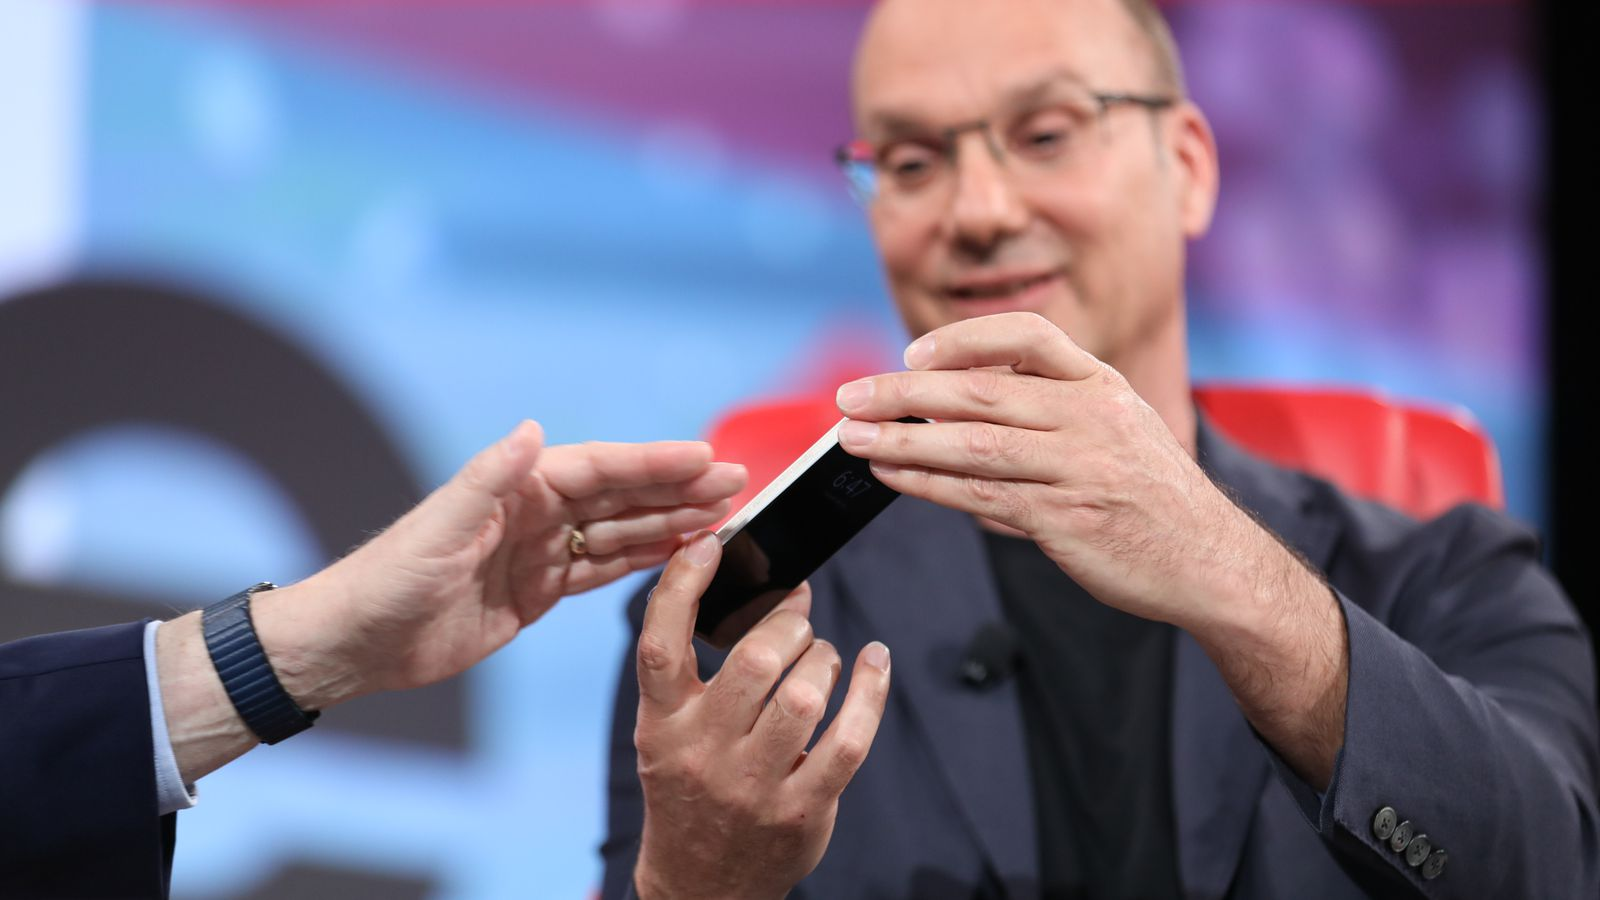 Andy Rubin Says Essential's Ambient OS will Be Open Source, Just like Android